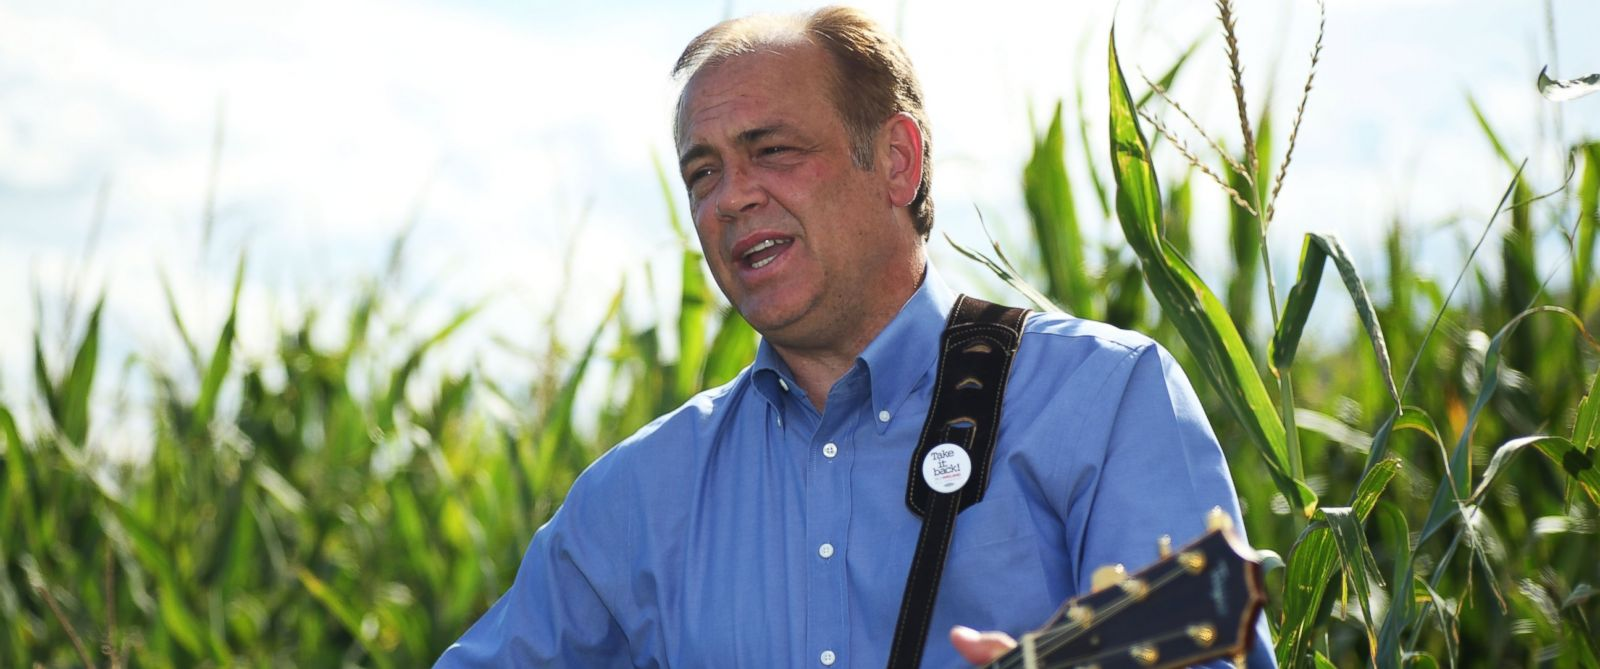 PHOTO: Rick Weiland, the Democratic candidate for Senate in South Dakota, has aired a series of parody music videos as campaign ads in the general election.